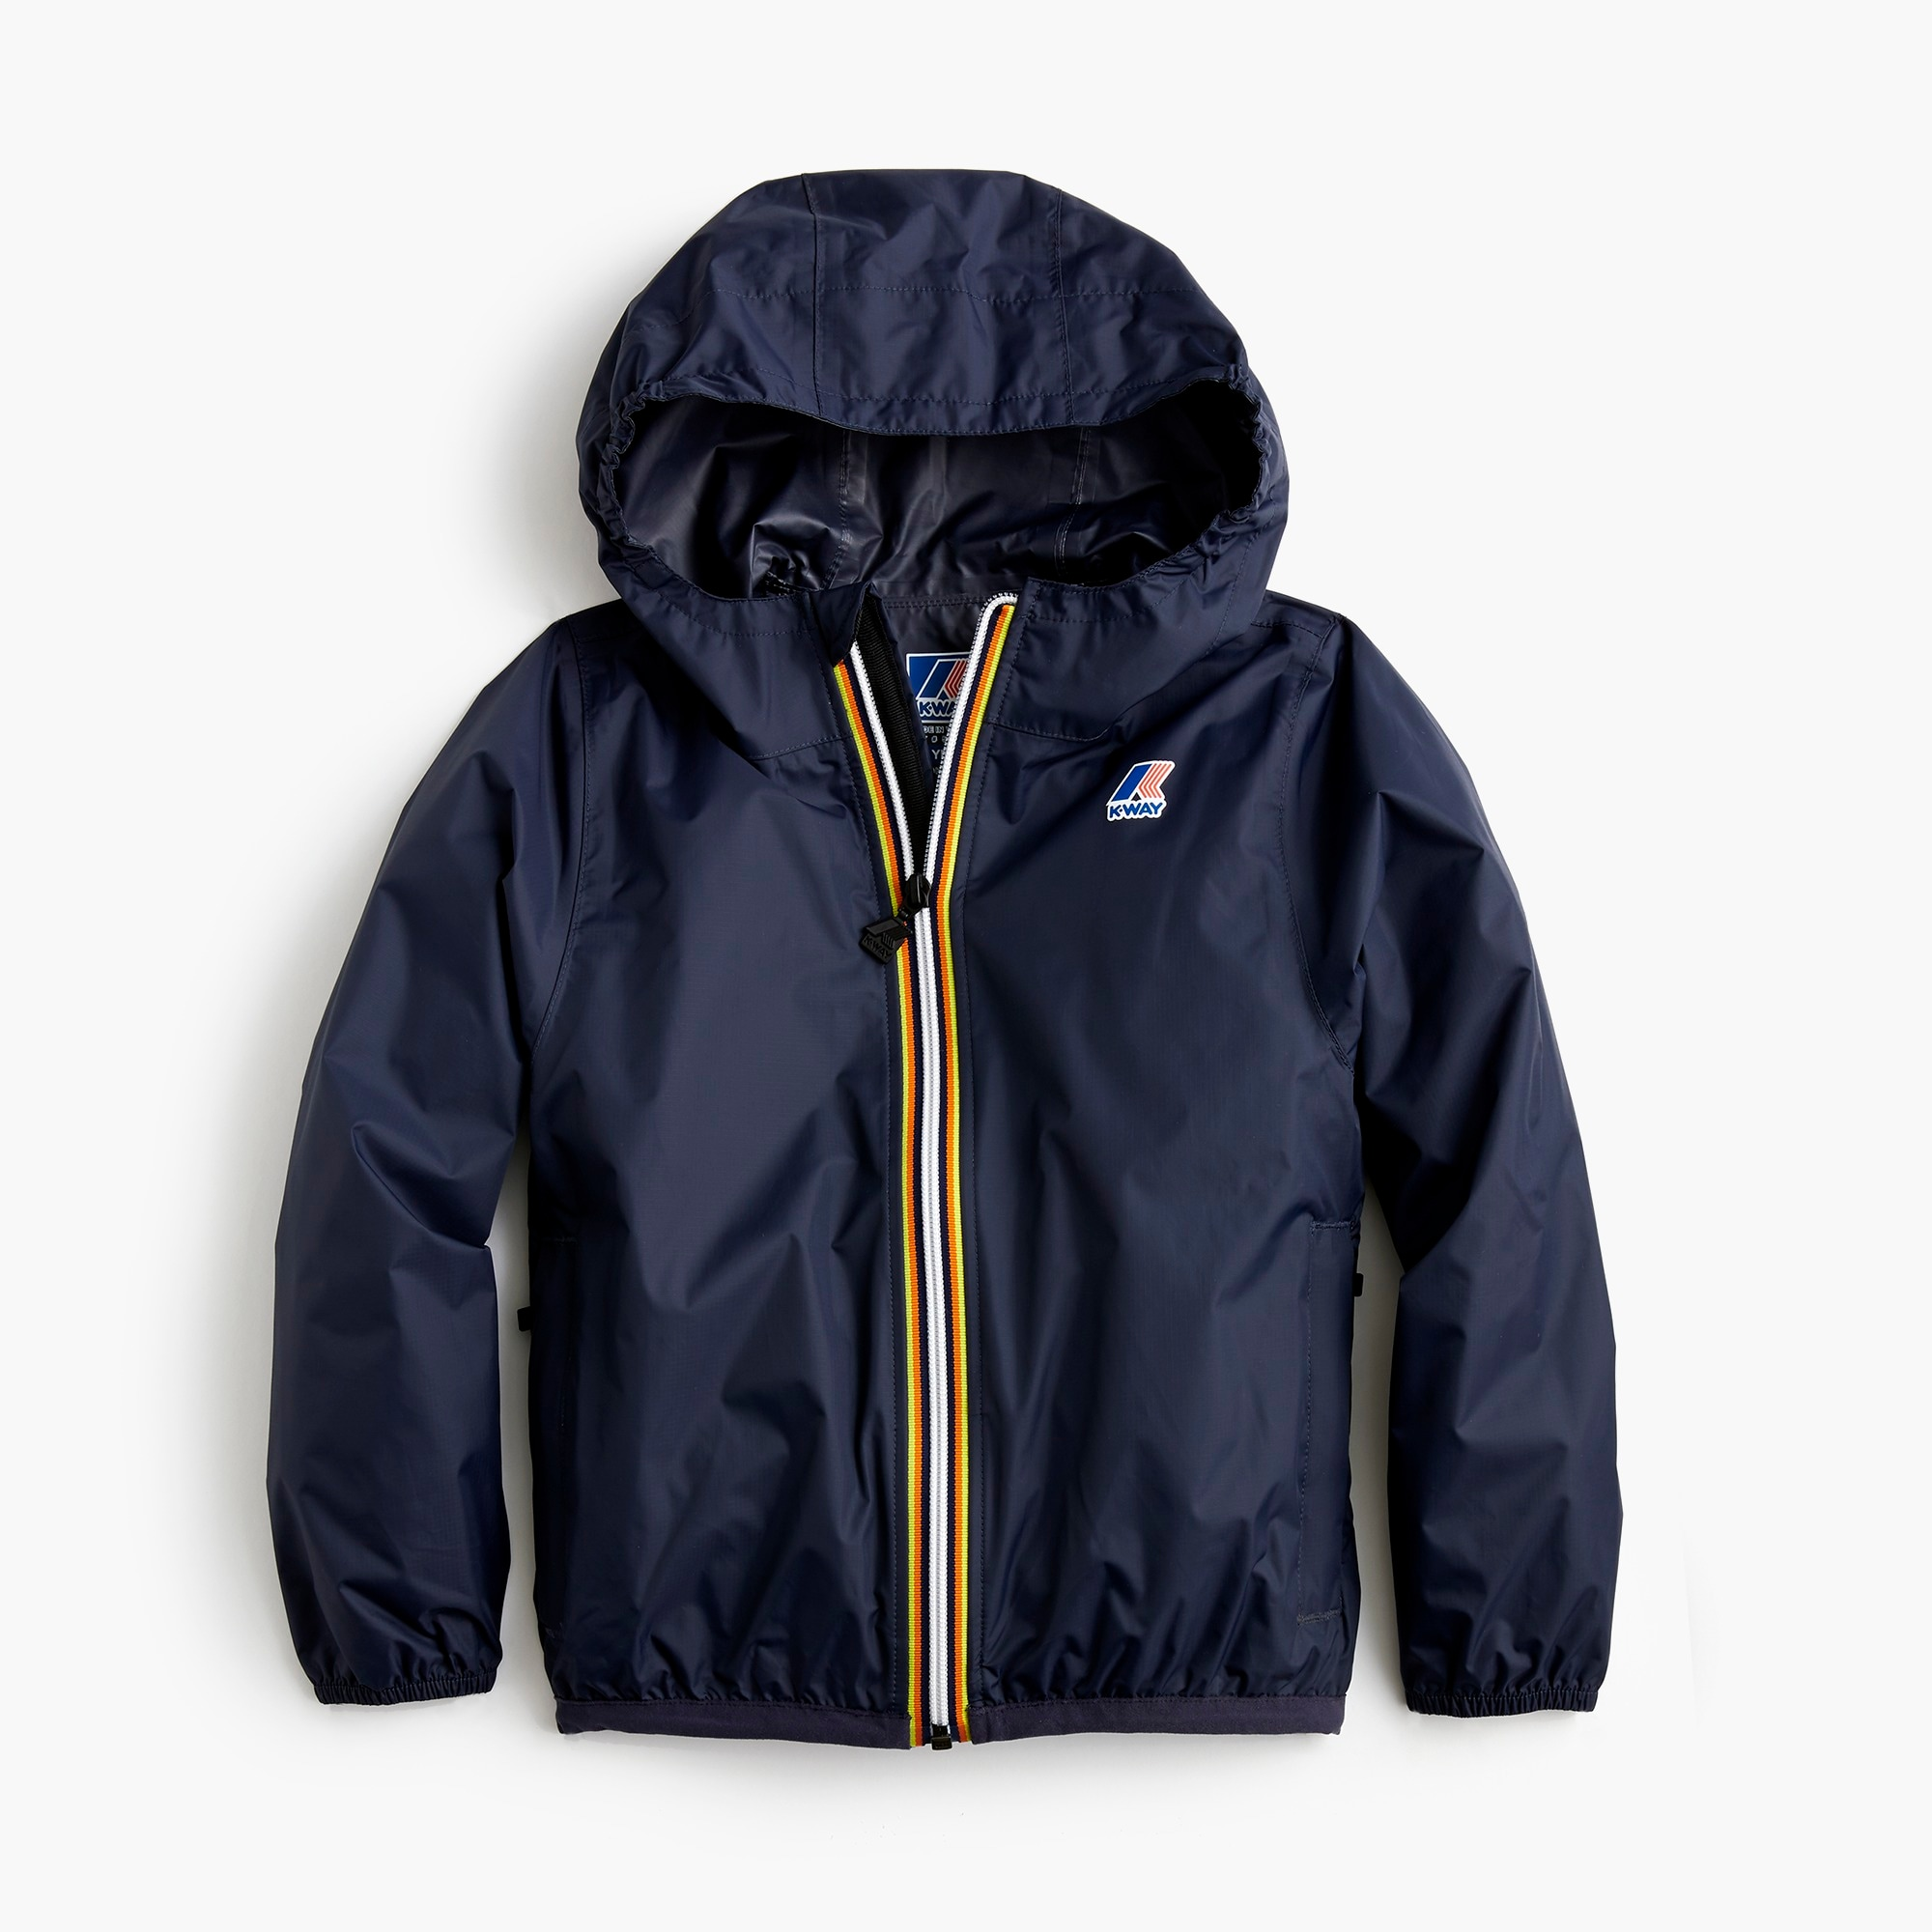 Image 1 for Kids' K-Way® Claude Klassic jacket